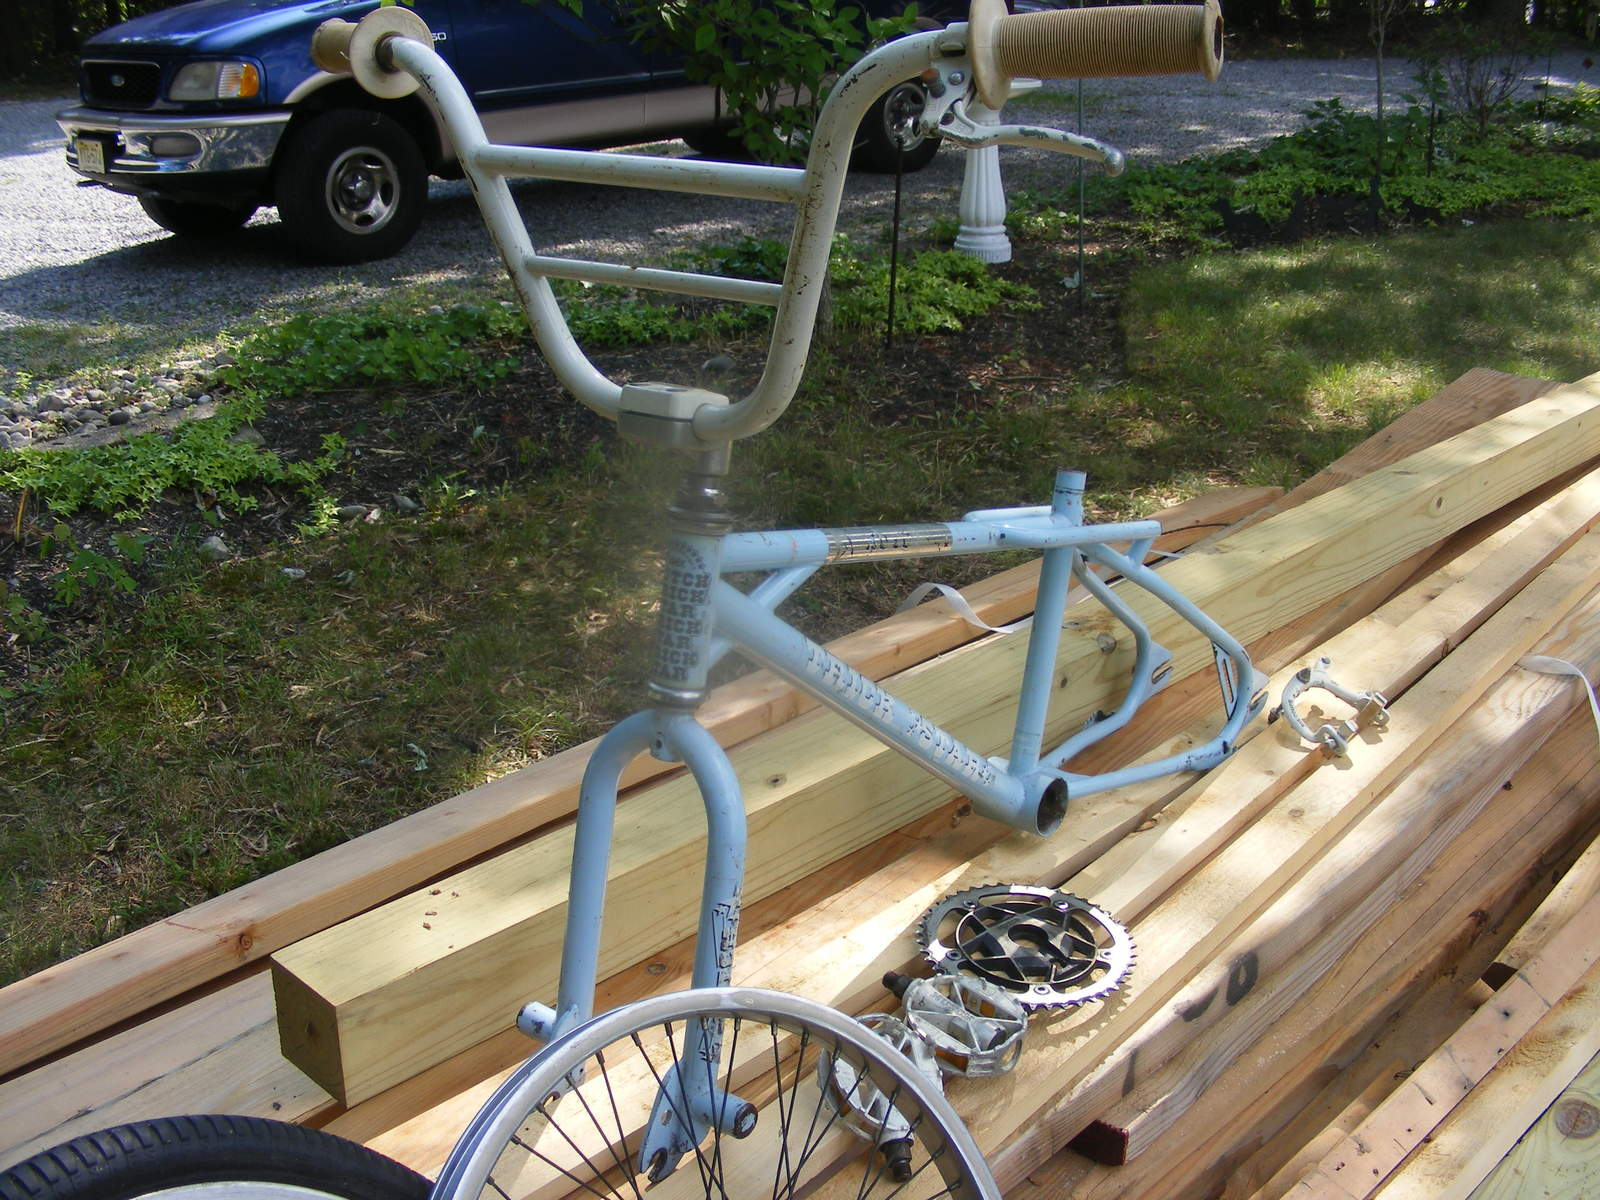 http://uploads.bmxmuseum.com/user-images/36734/dscf13355b0556be25.jpg